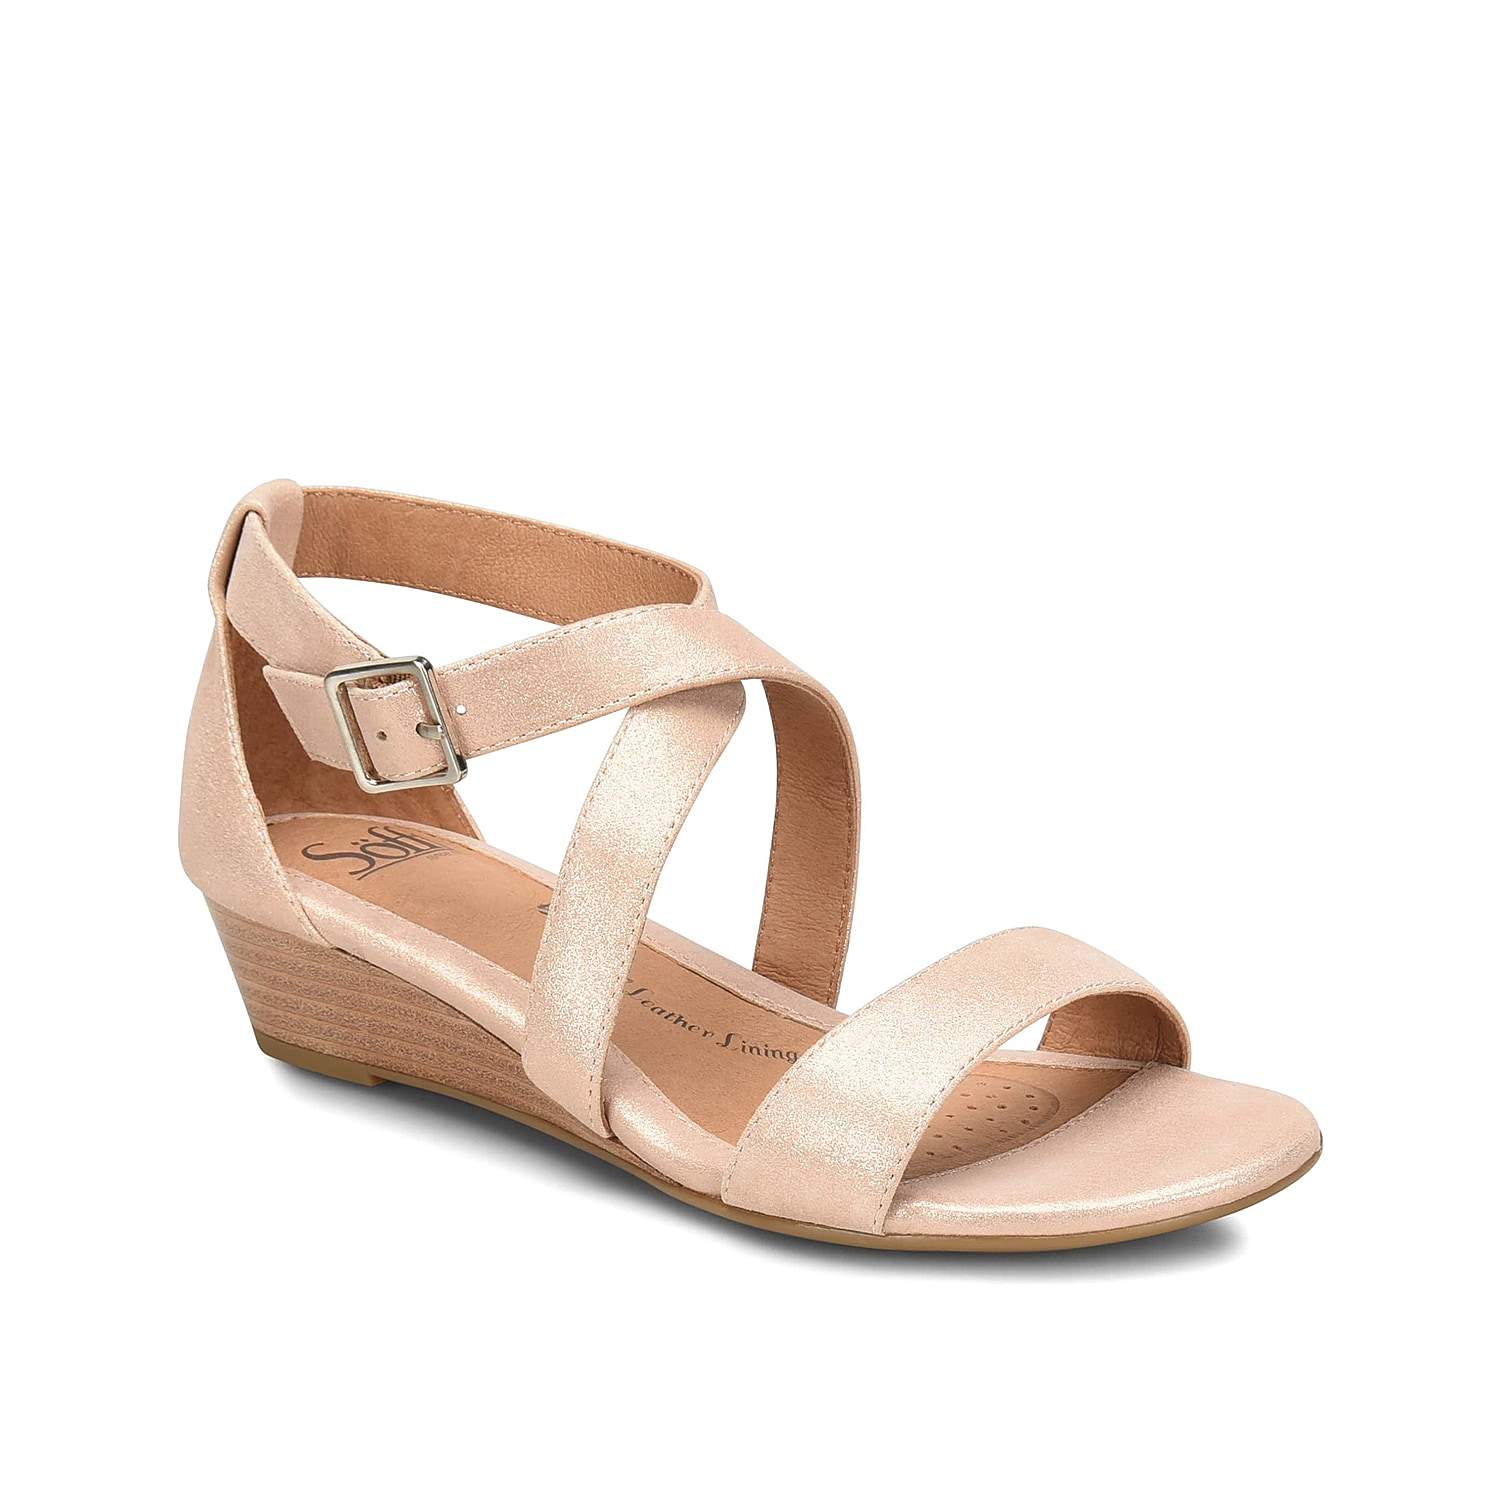 The Innis wedge sandal from Sofft features a classic design that is easy to pair with your whole warm weather wardrobe. This leather pair features a leather-lined cushioned footbed with extra arch support for daylong comfort.